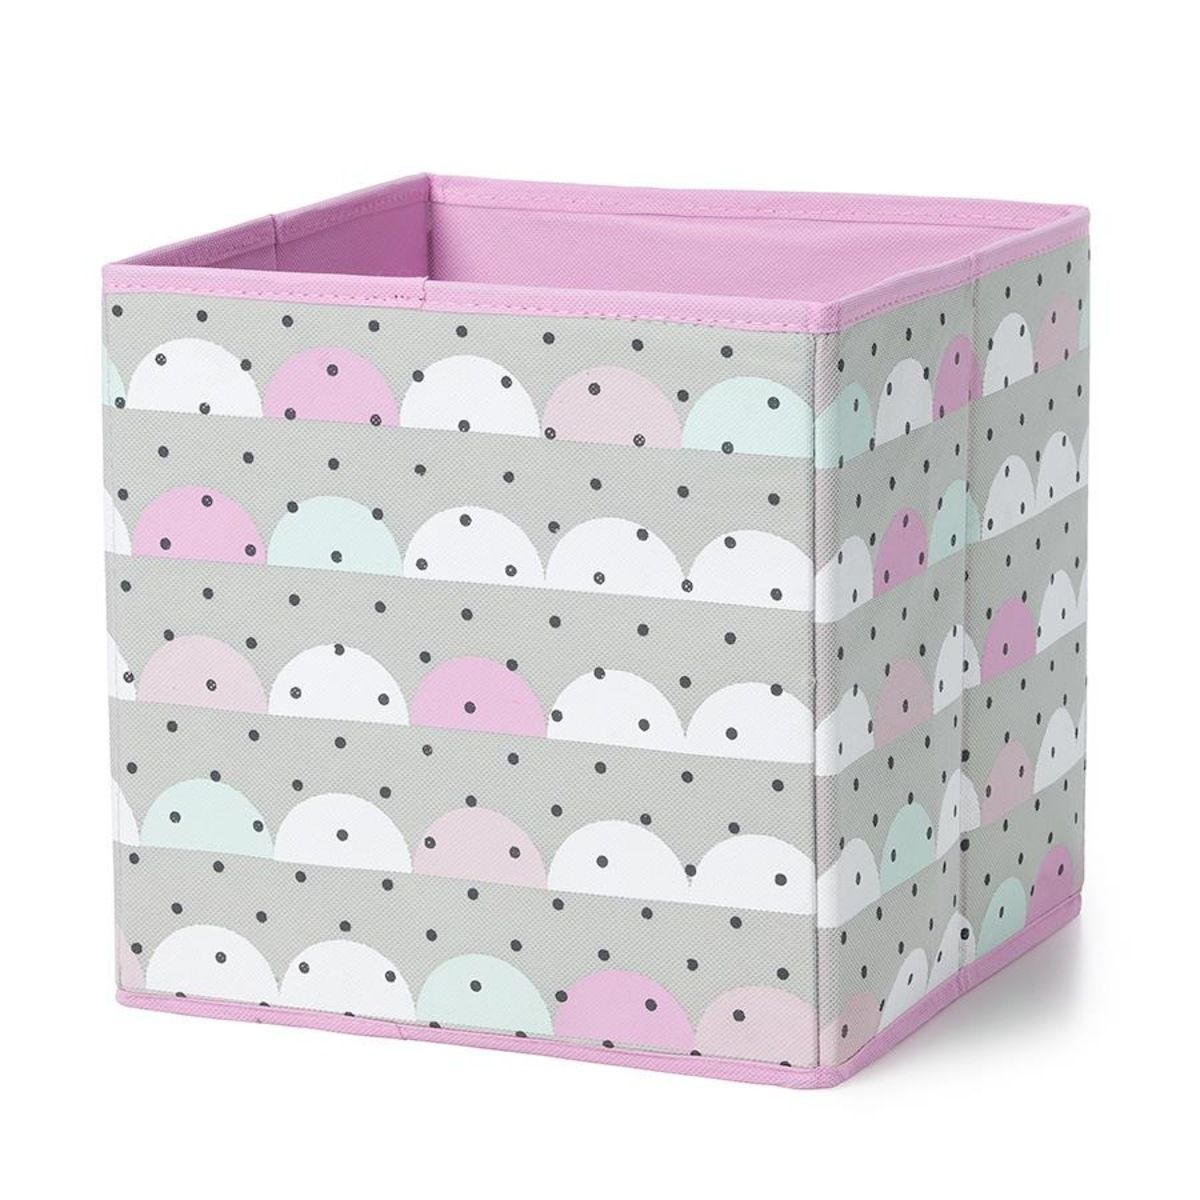 Square Collapsible Canvas Storage Box Foldable Kids Toys: Kmart Collapsible Storage Cube - For Kallax